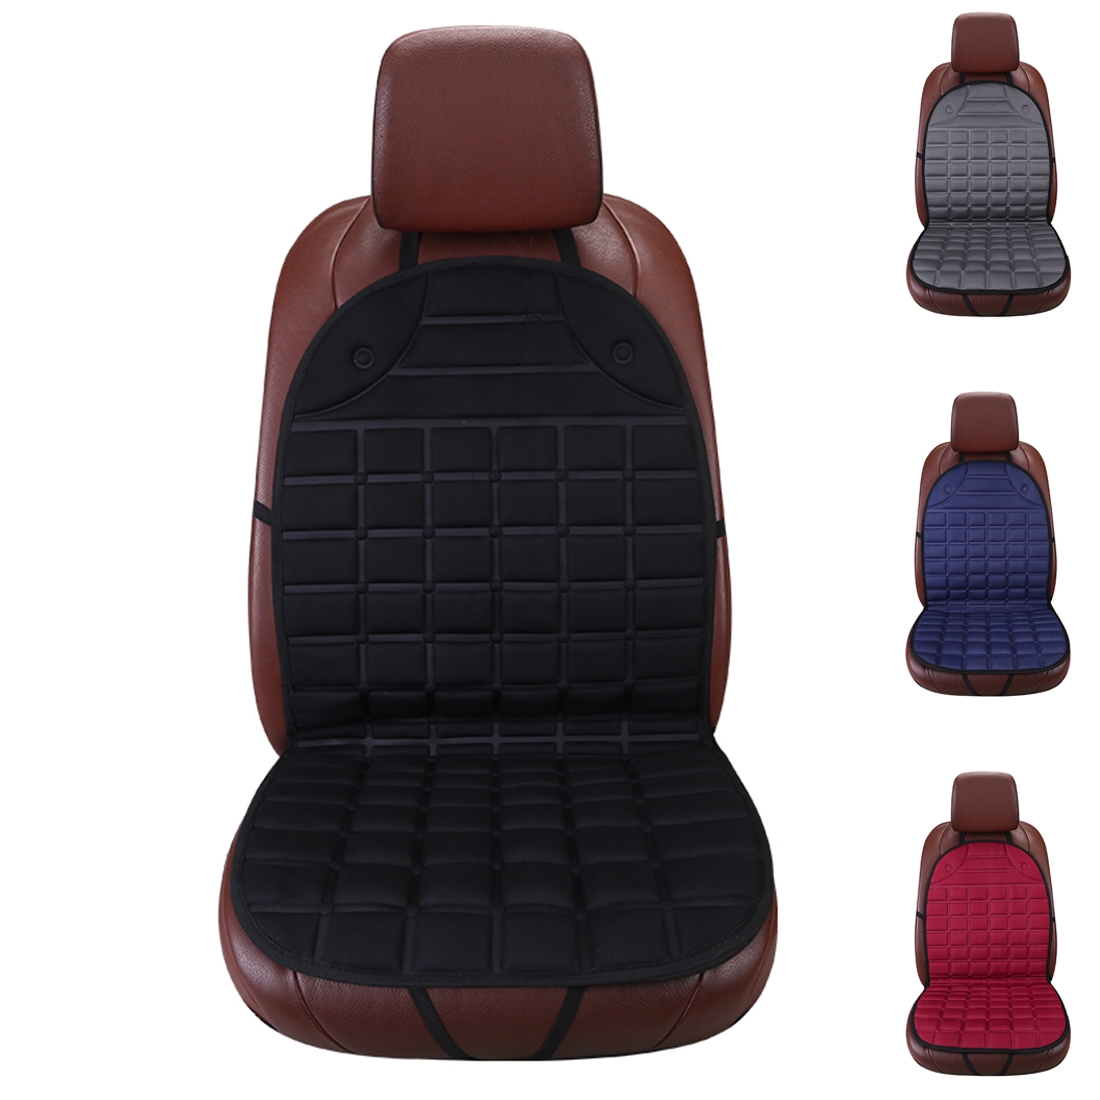 Dewtreetali Winter Single Car Seat Covers Universal Front Car Seat Warm Cushion Protector Pad Black Gray for VW BMW Toyota Audi dewtreetali universal automoblies seat cover four seaons car seat protector full set car accessories car styling for vw bmw audi